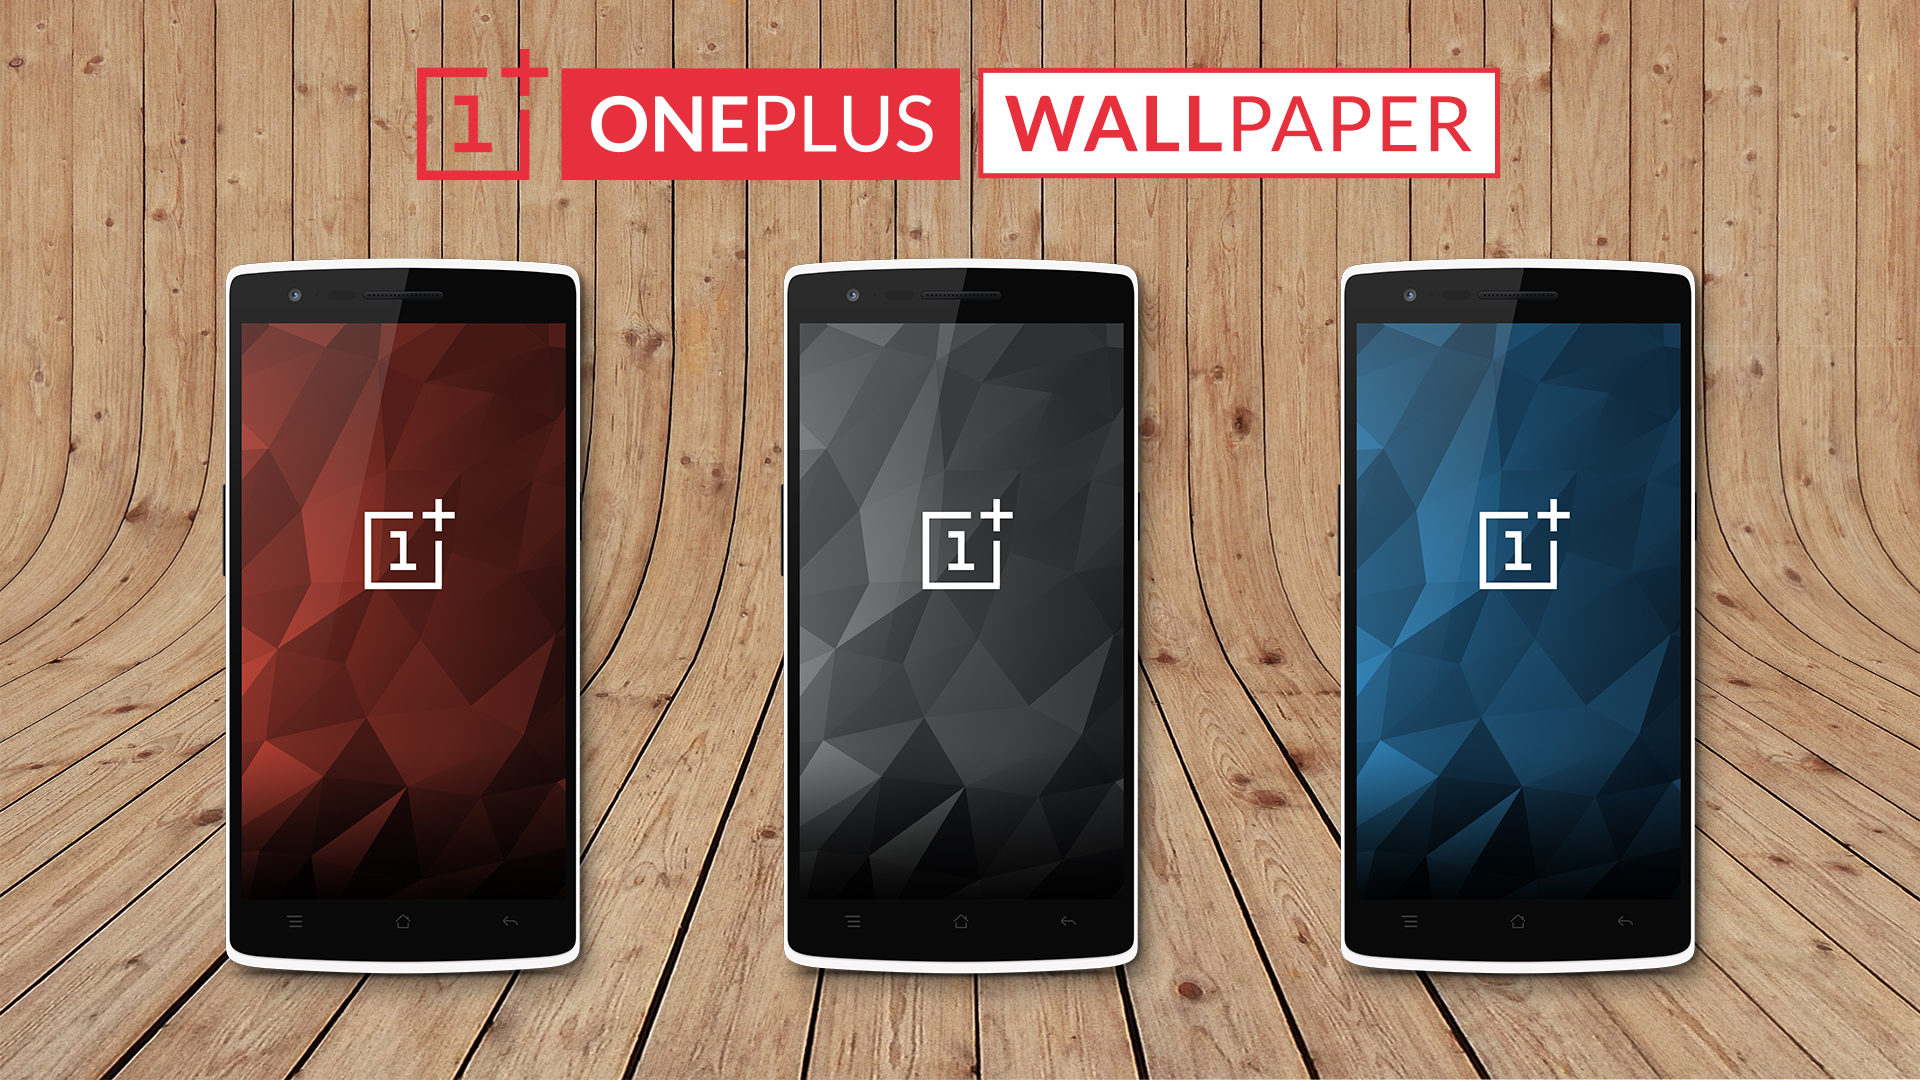 Oneplus One Wallpaper Oneplus Community